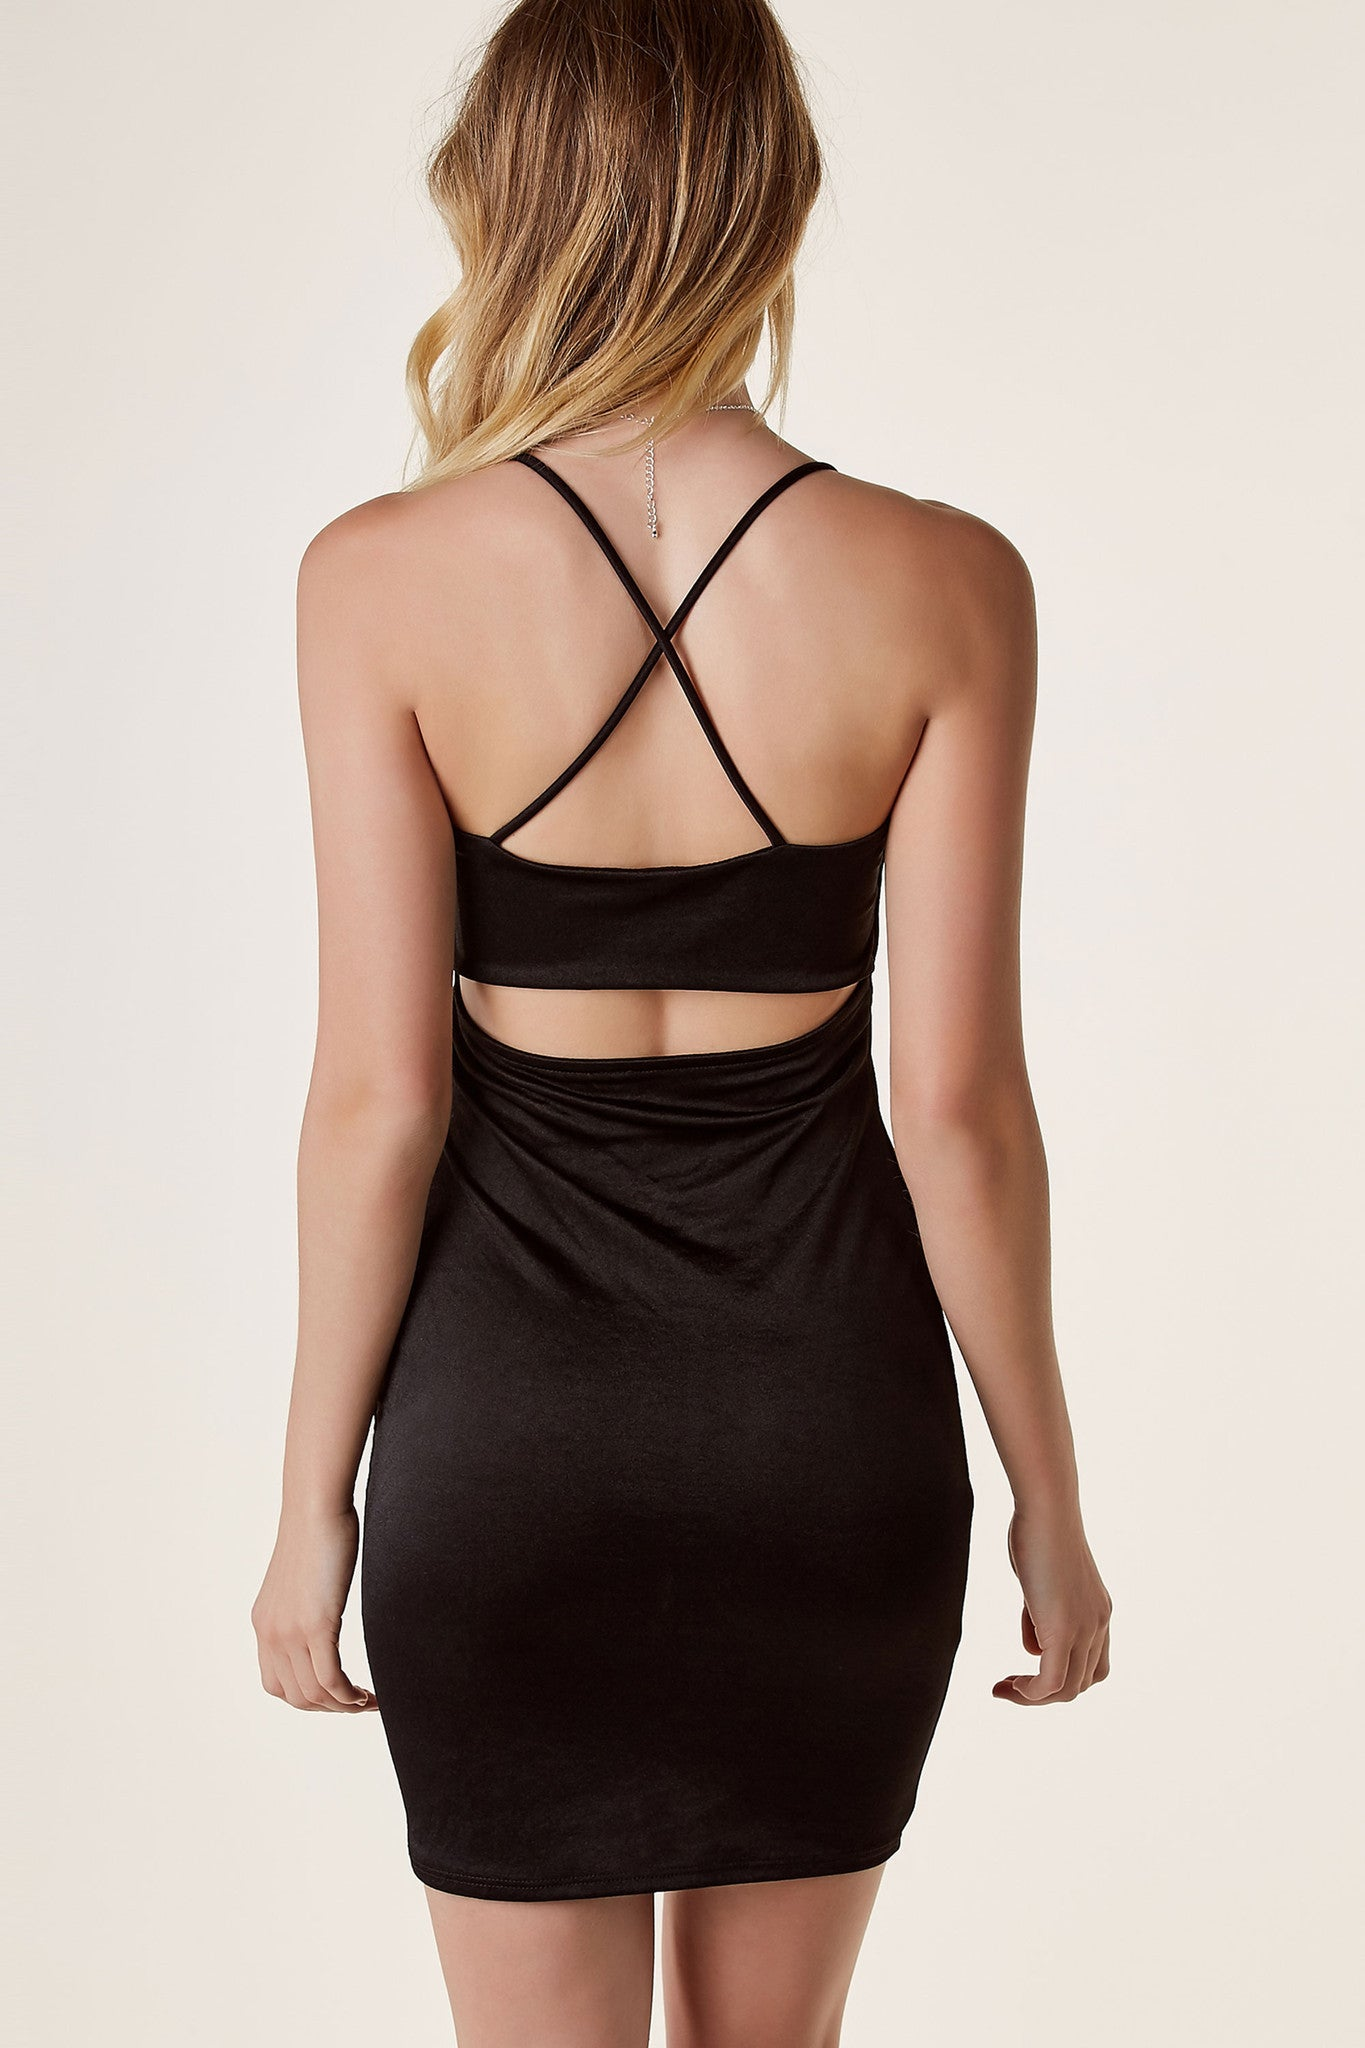 Sexy spaghetti strap bodycon dress with flattering straight neckline. Smooth slinky material with cut out back and criss-cross strap finish.